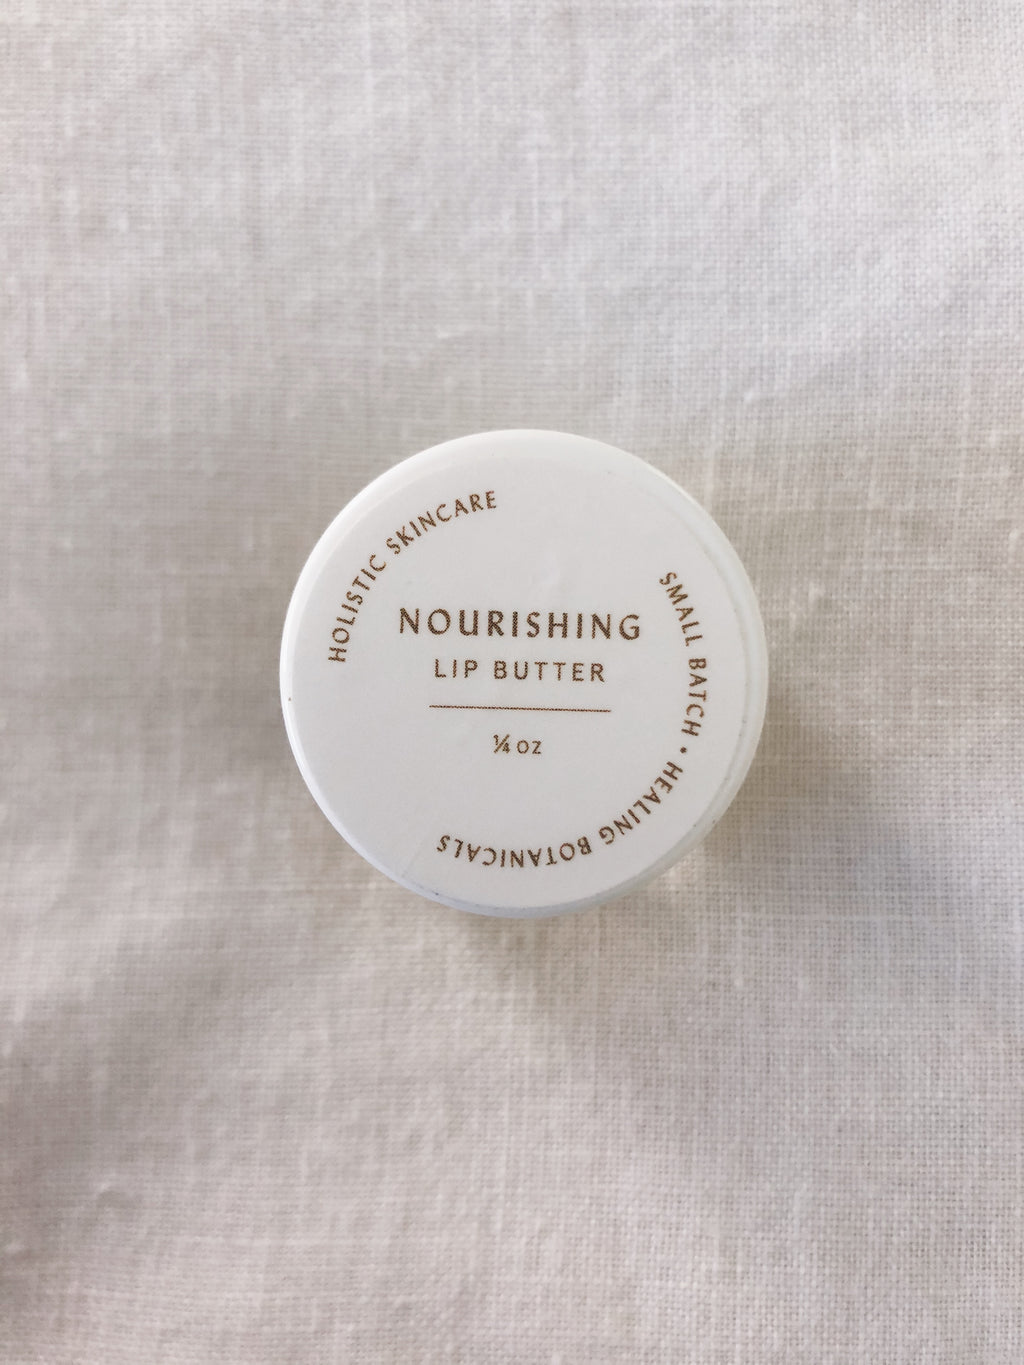 Nourishing Lip Butter